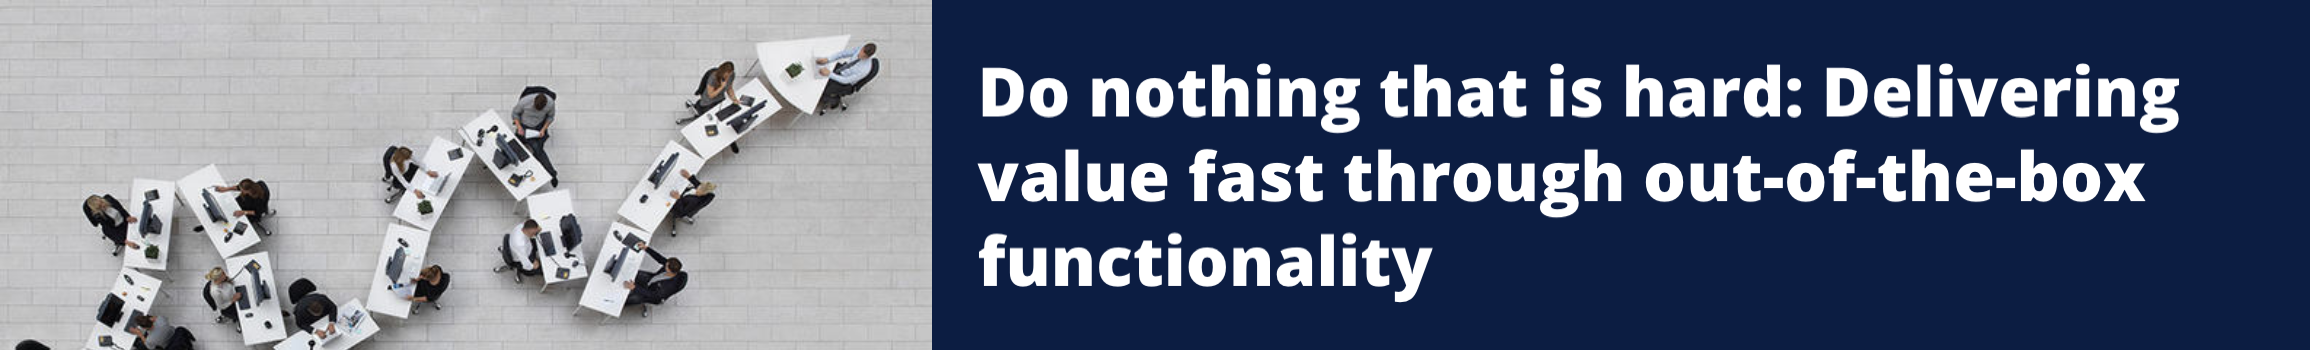 Do nothing that is hard: Delivering value fast through out-of-the-box functionality